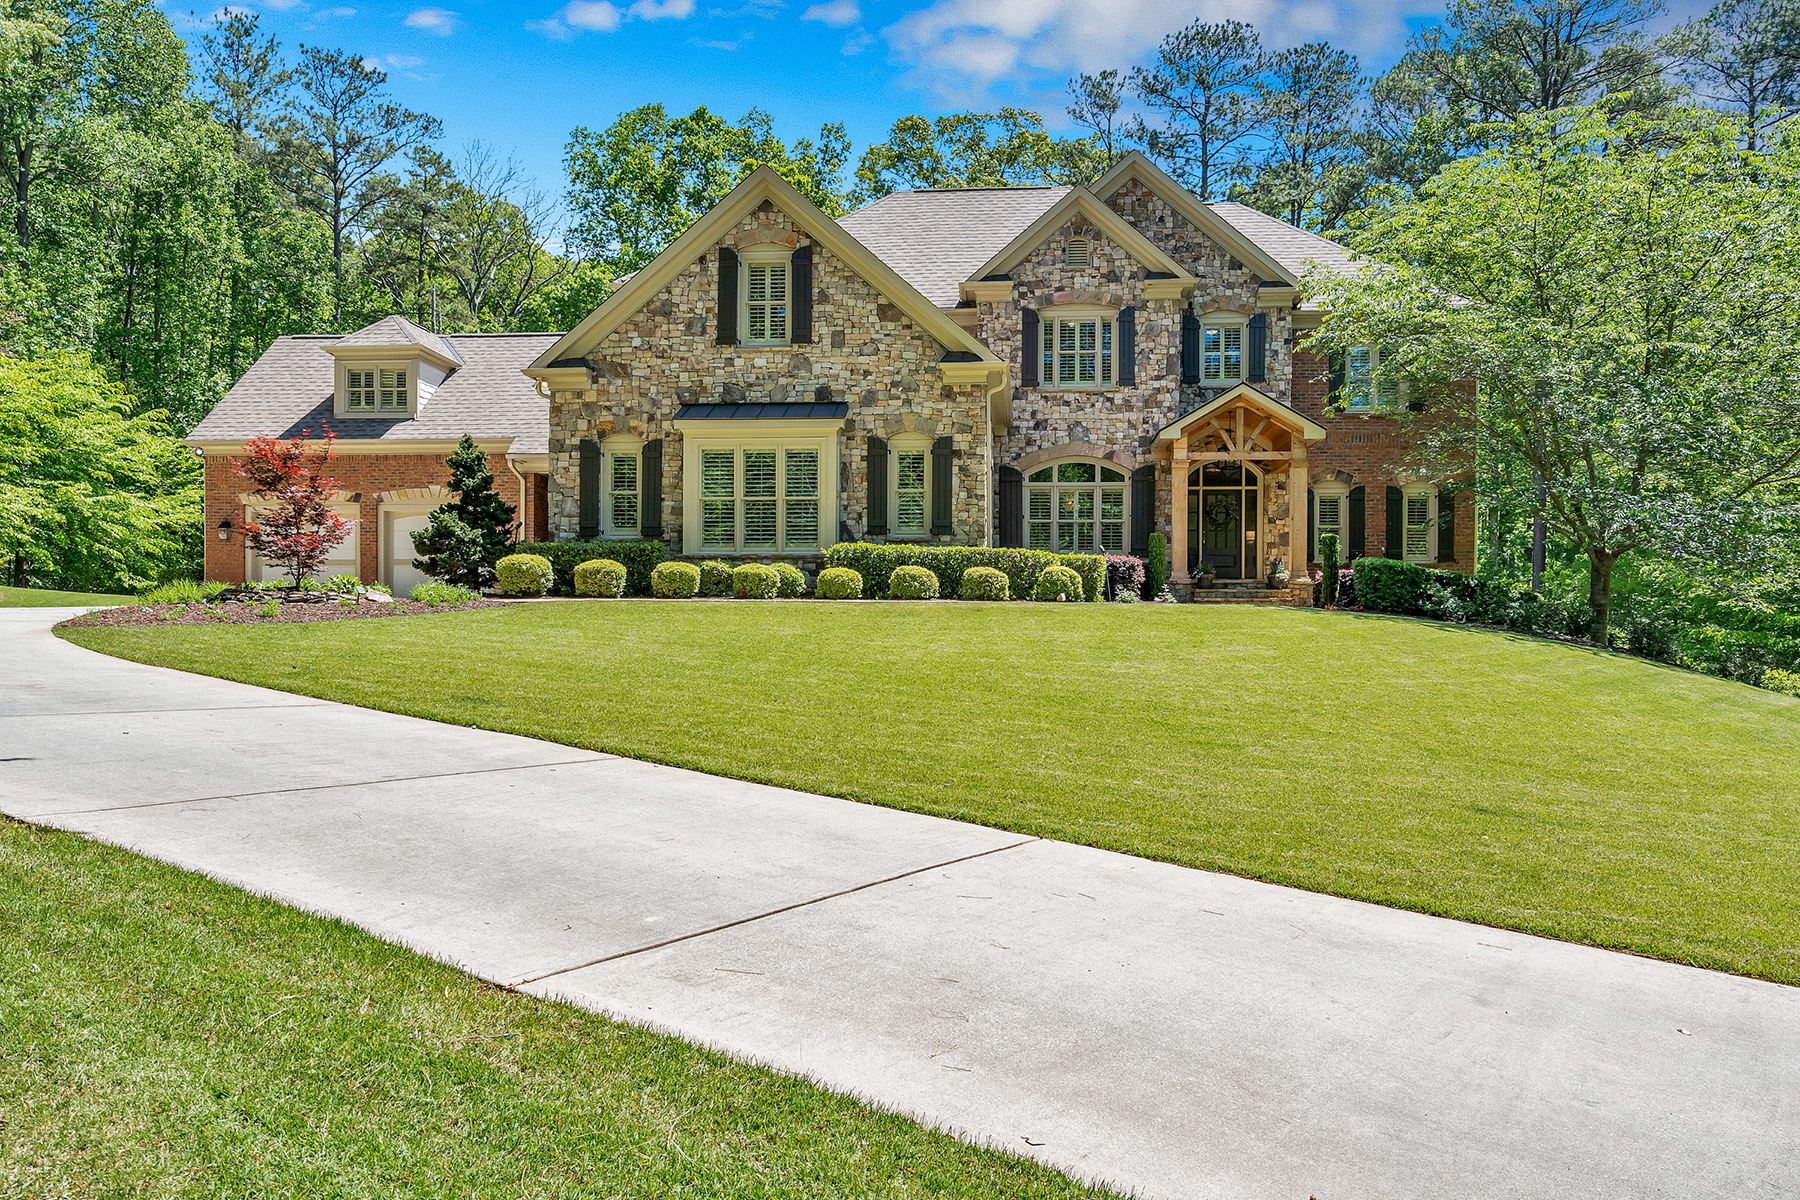 Single Family Homes for Sale at A Beautifully Appointed Home on a Premium 4.31+/- Acre Lot 794 Old Lathemtown Road Canton, Georgia 30115 United States